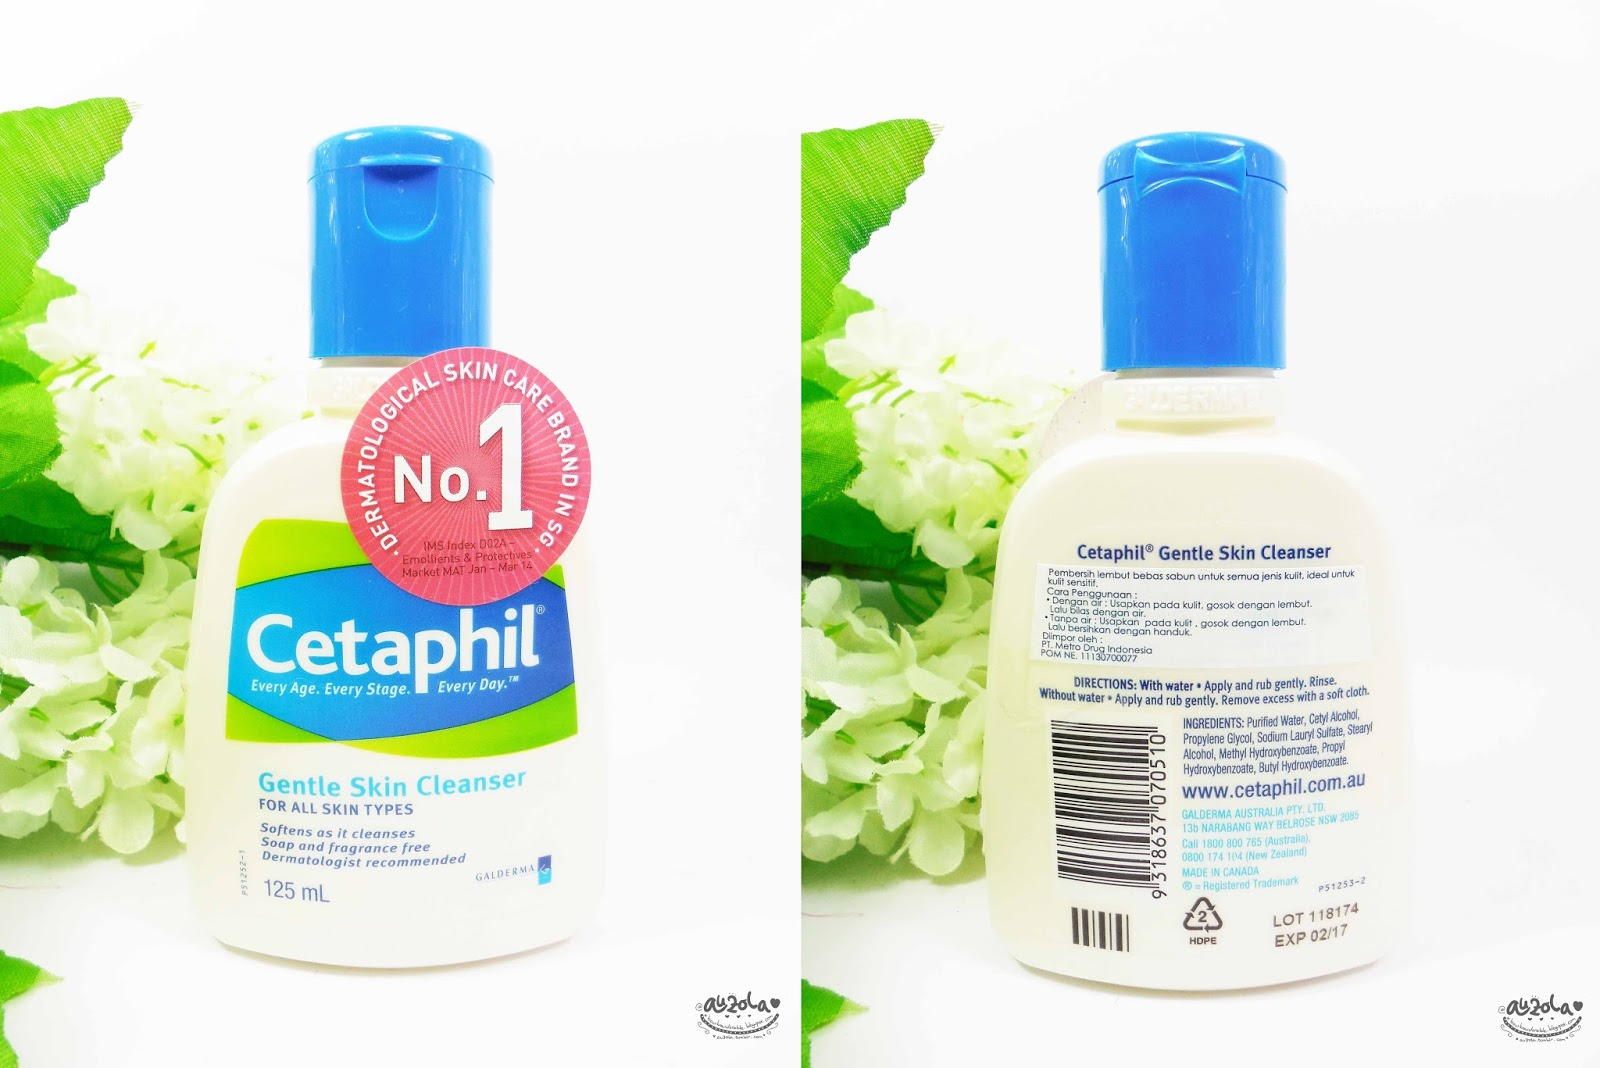 Rainbowdorable By Auzola Indonesian Beauty Blogger Experience Cetaphil 125 Ml Gentle Skin Cleanser The Packaging Is So Simple And Nothing Special About It Has This Almost White Satin Color With Blue Cap I Quite Like Flip Its Easier To Use